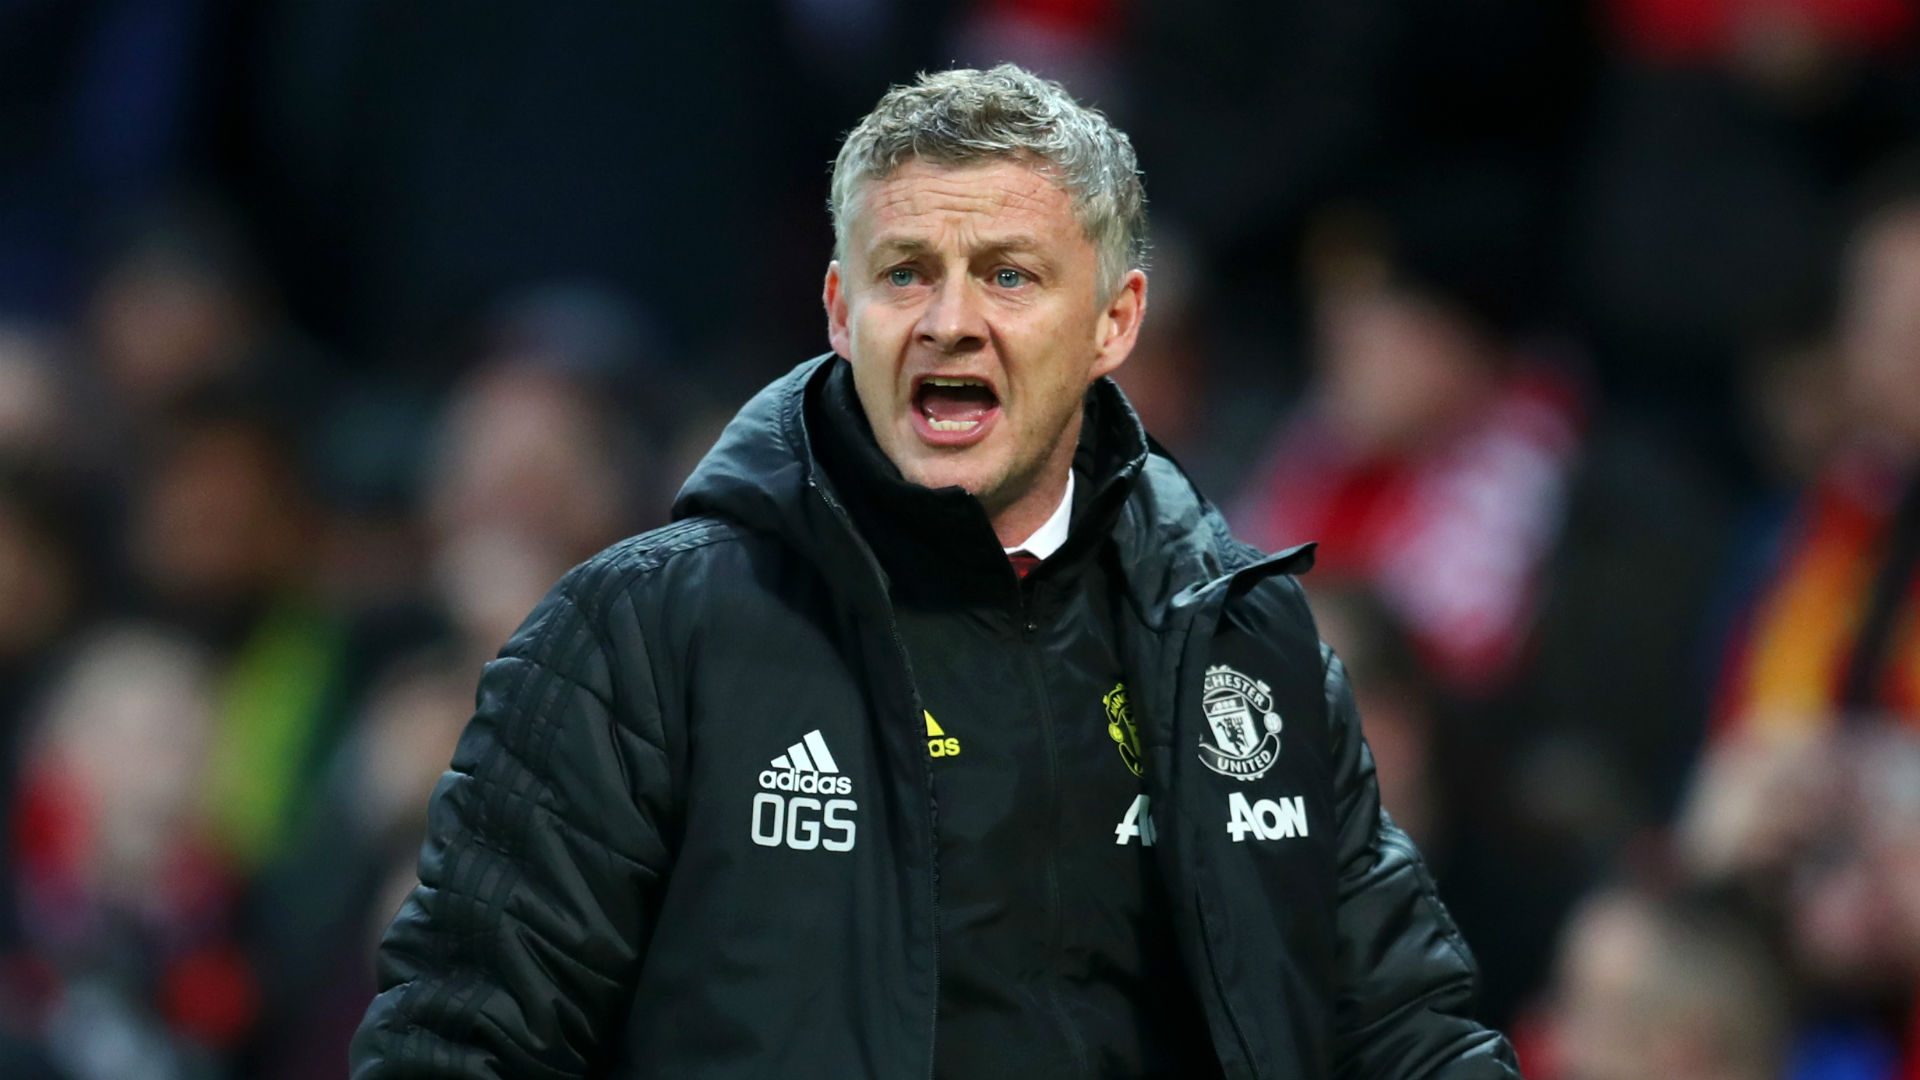 Schmeichel says Manchester United have a 'fantastic' boss in Solskjaer